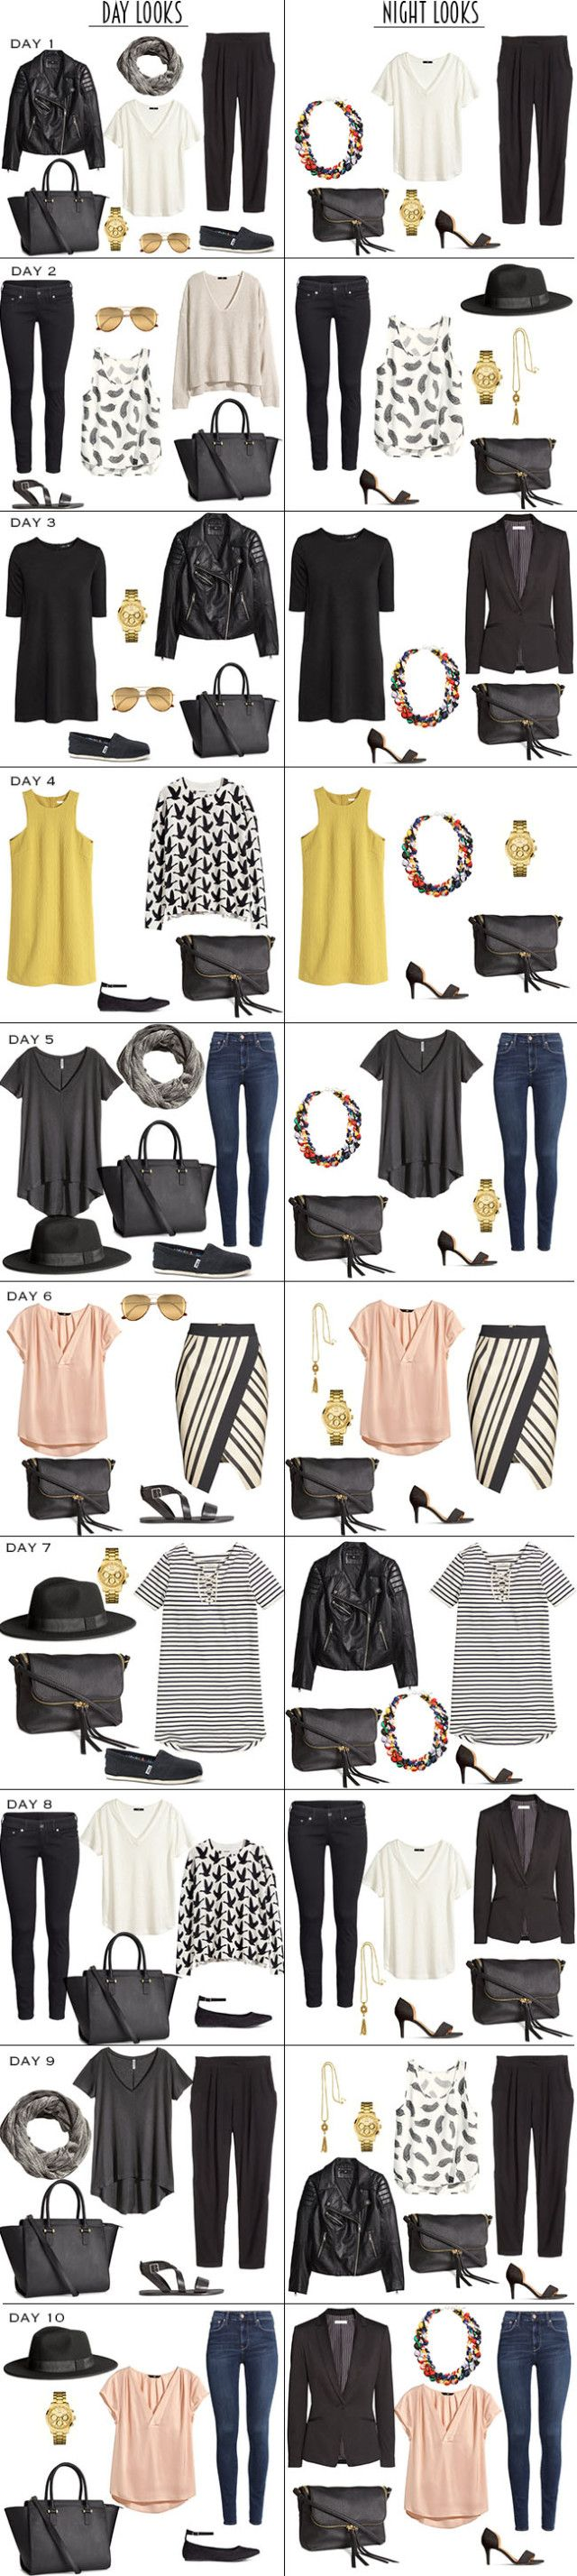 Packing Light for 10 Days in Copenhagen, Denmark. These are the 10 Day and 10 Night Looks. A full packing list is available on the Blog. #packinglight #travellight #packinglist